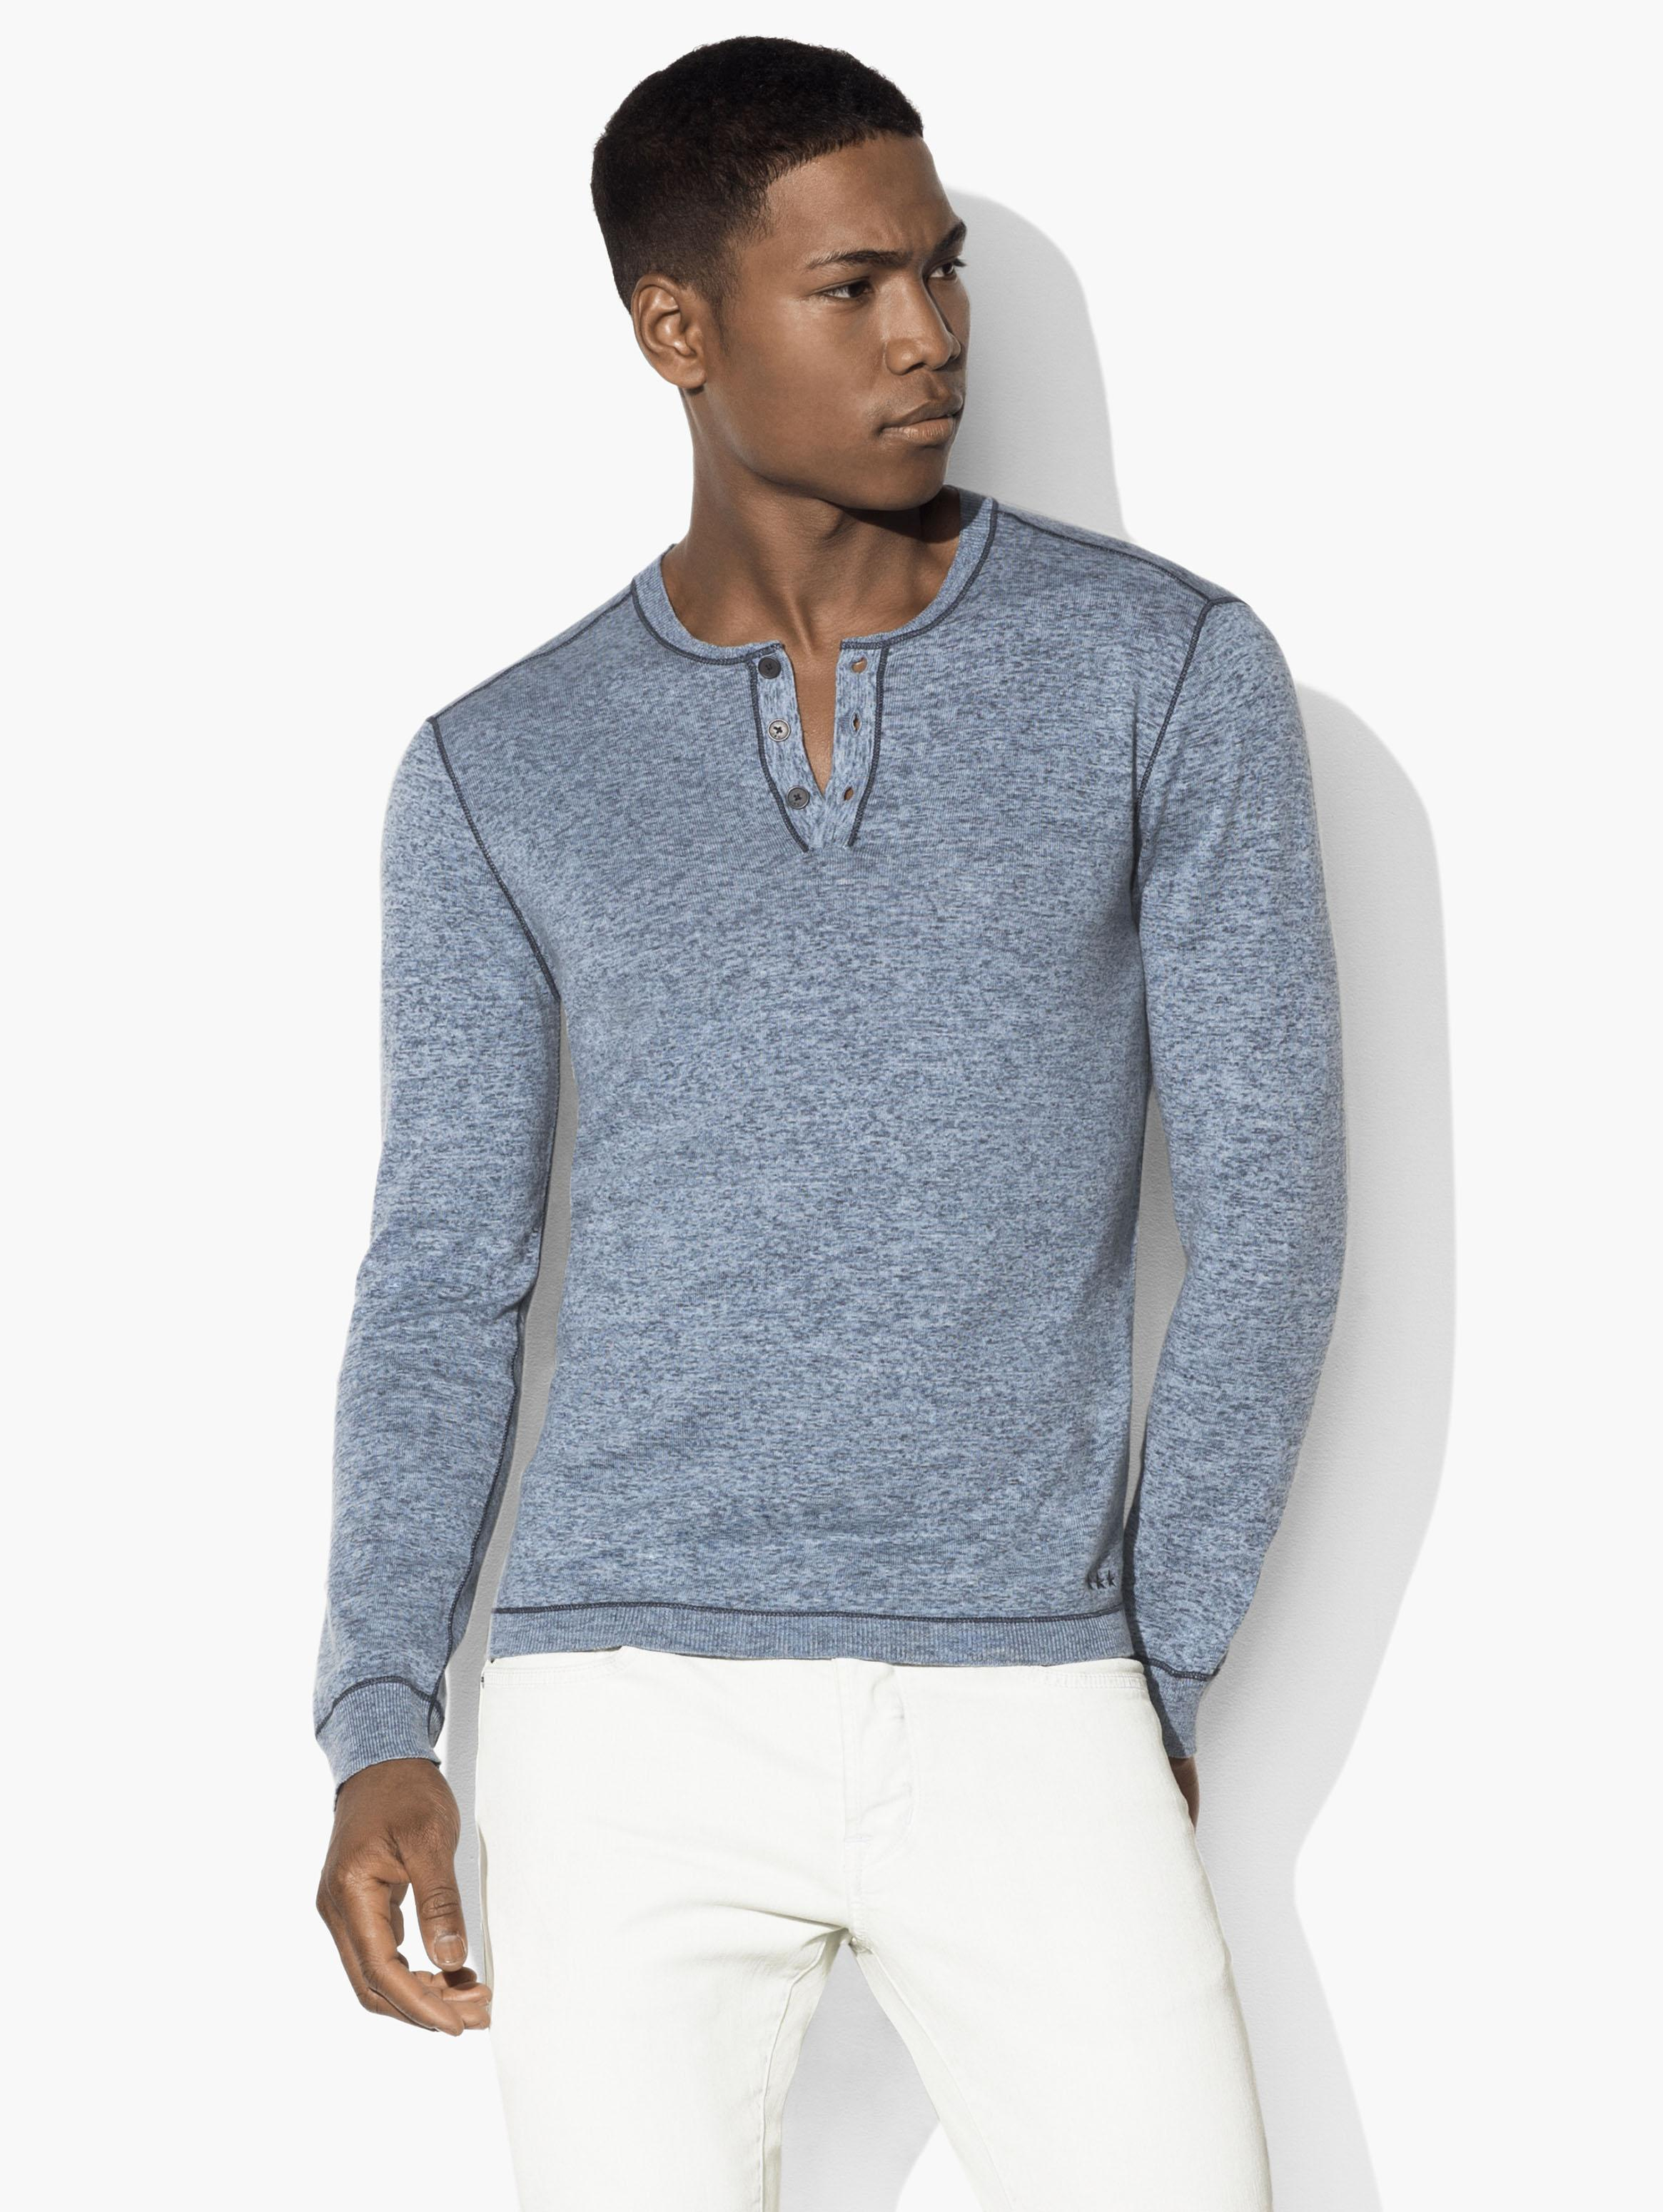 Henley Sweater with Stitched Details